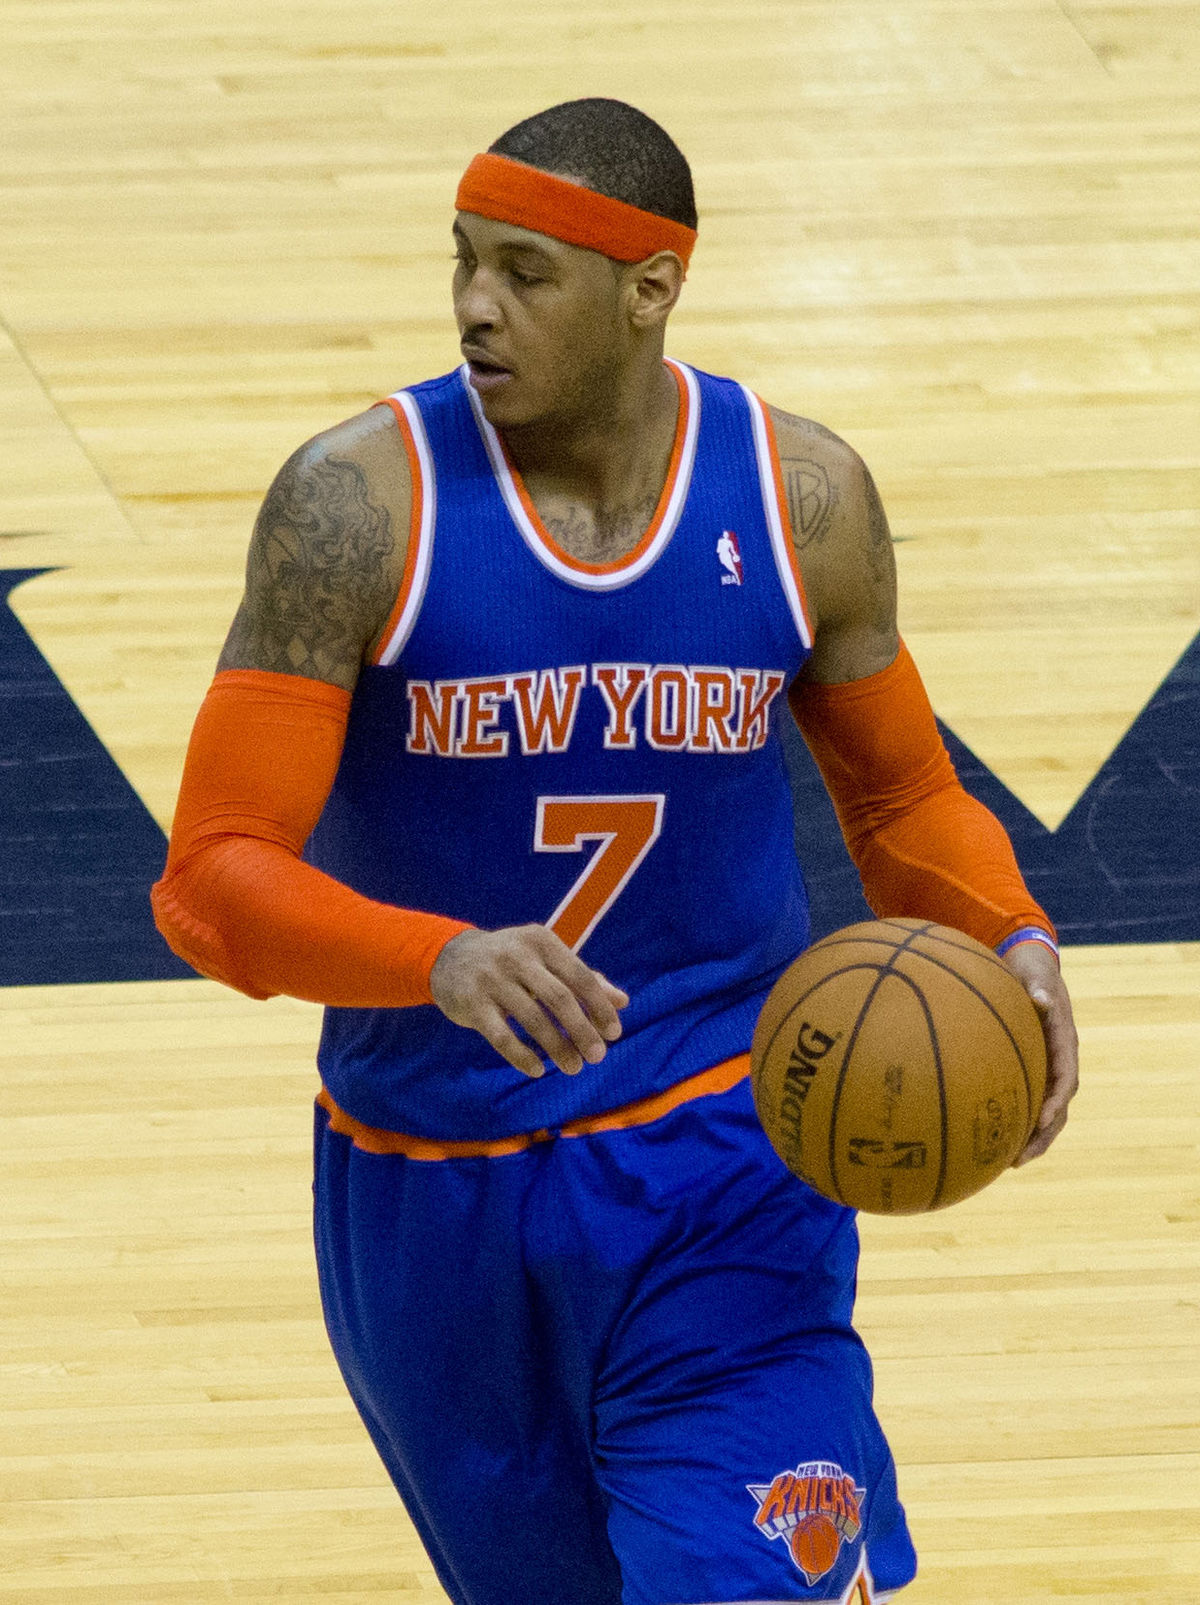 1200px-Carmelo_Anthony_March_2013.jpg